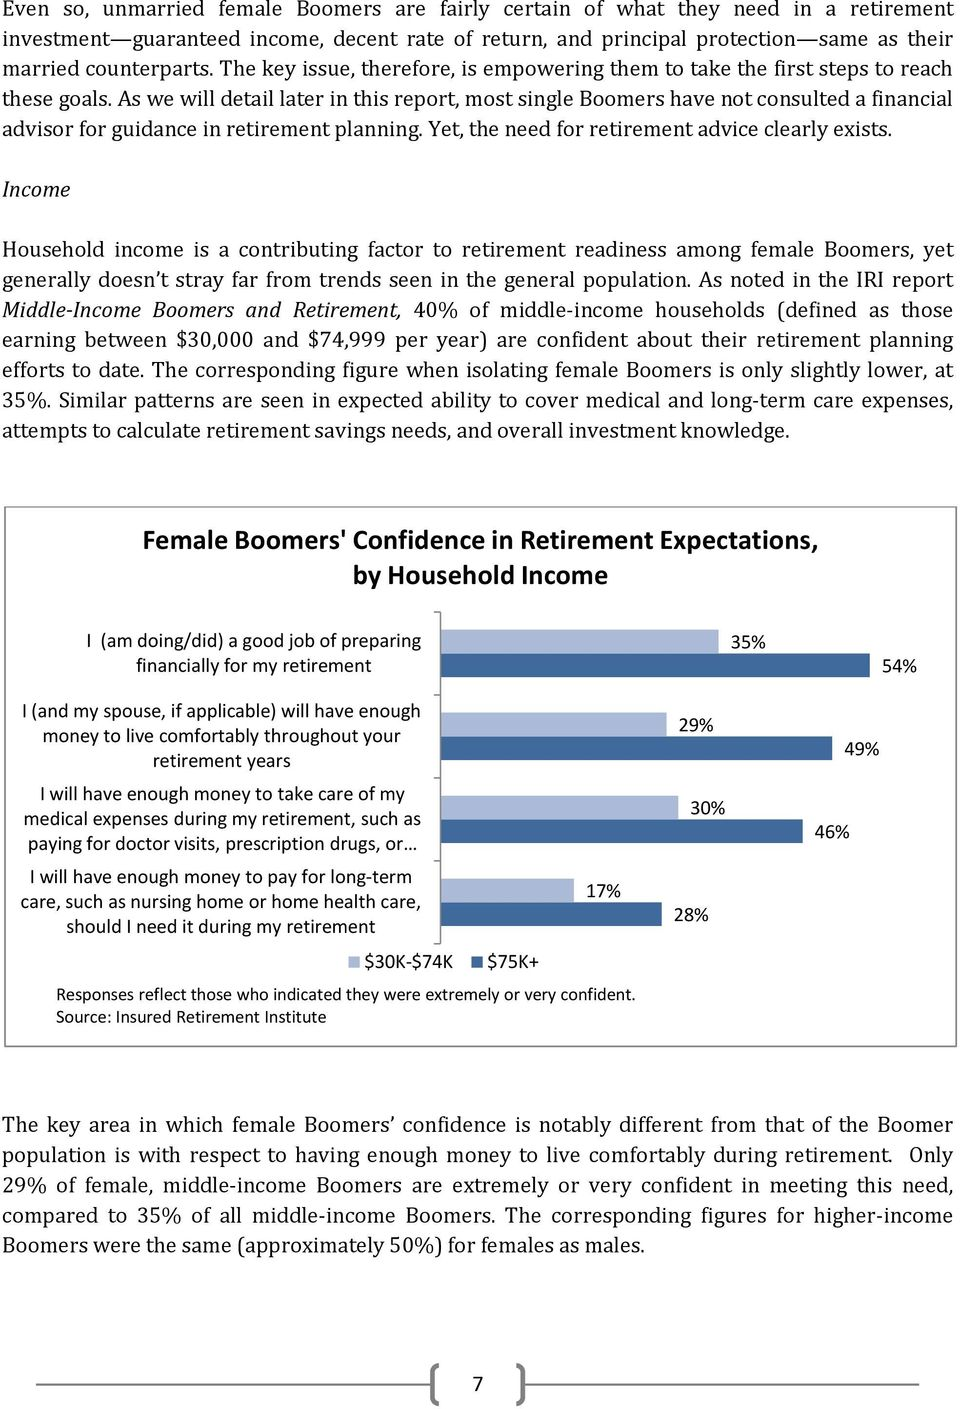 As we will detail later in this report, most single Boomers have not consulted a financial advisor for guidance in retirement planning. Yet, the need for retirement advice clearly exists.